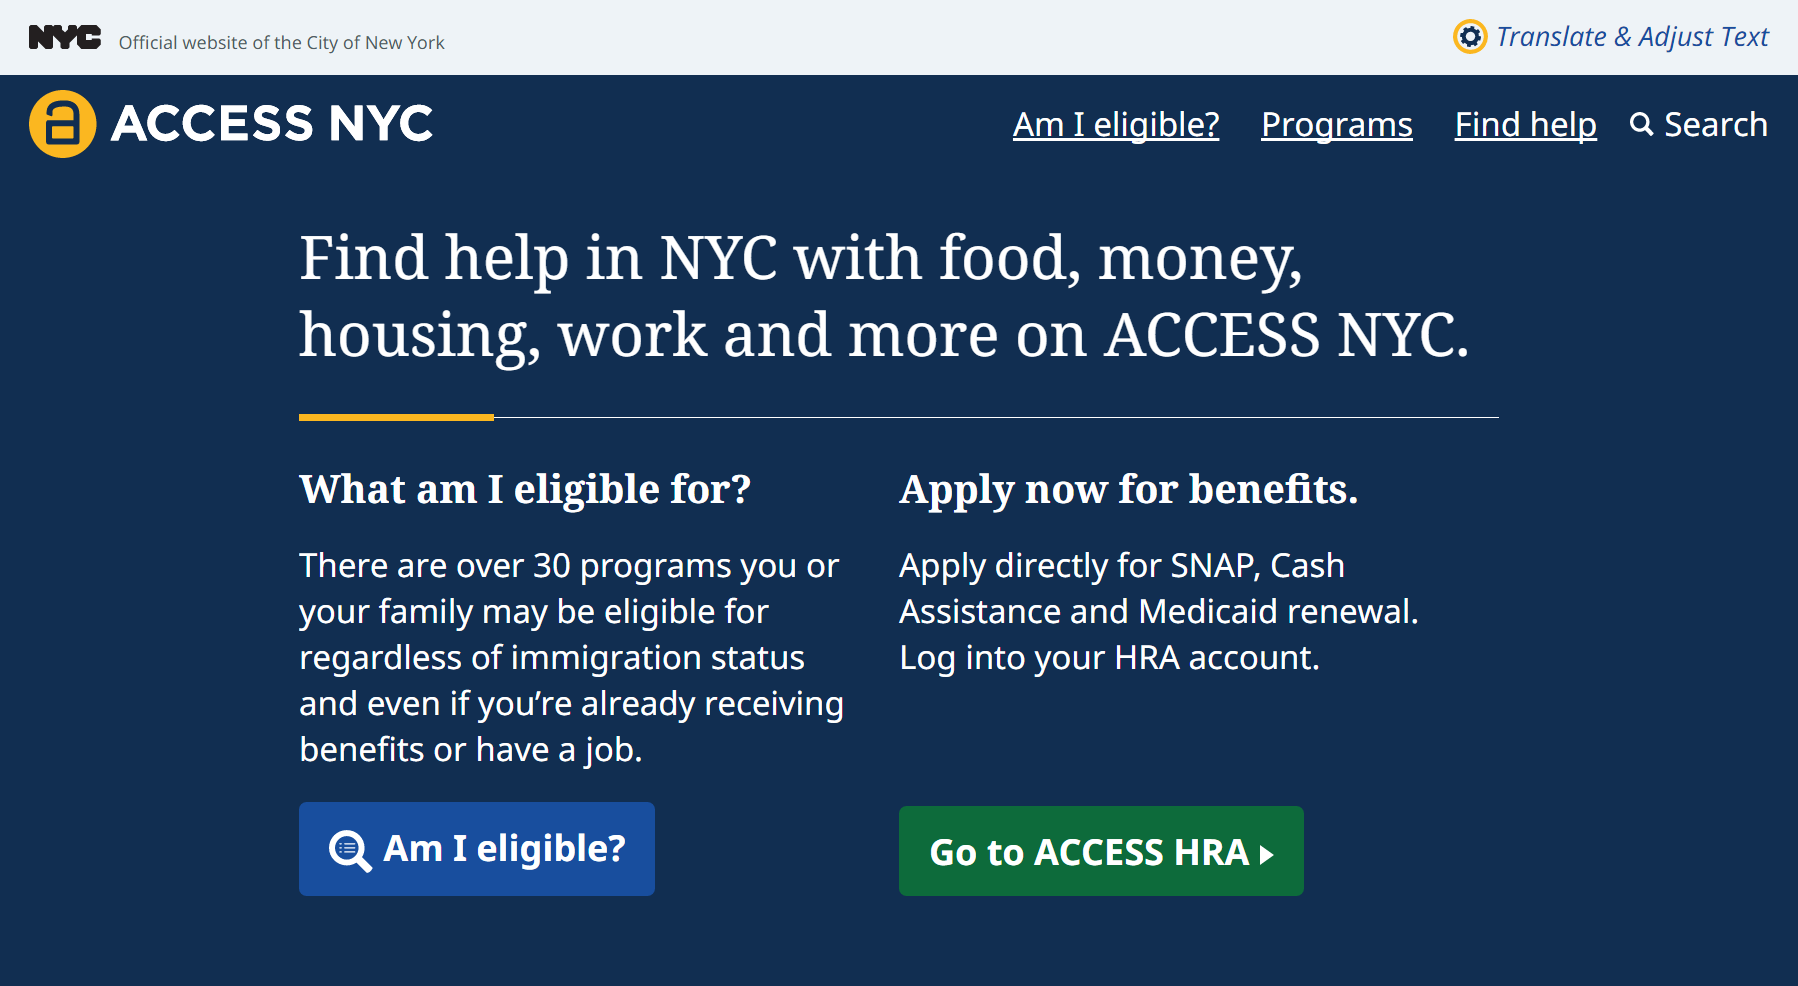 ACCESS NYC homepage